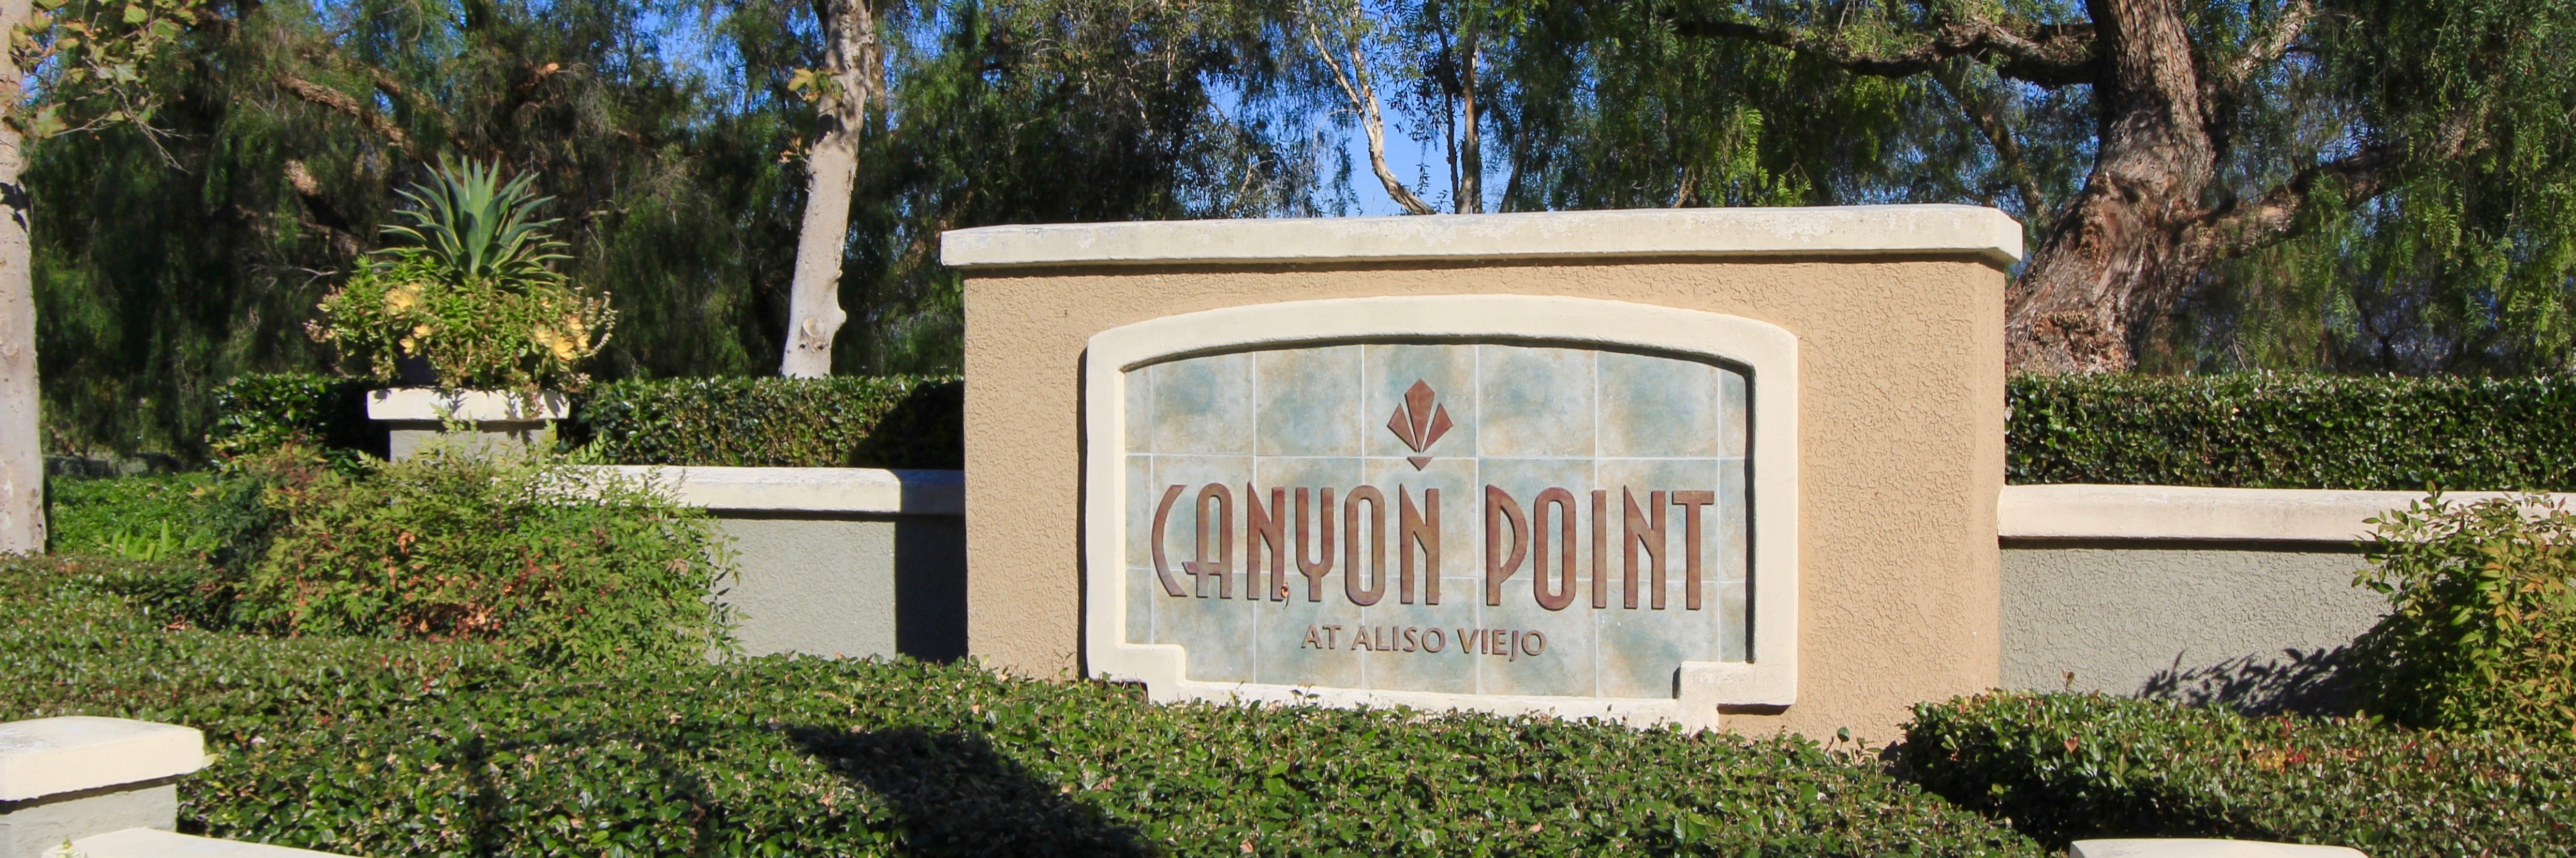 Canyon Point Community Marquee in Aliso Viejo Ca